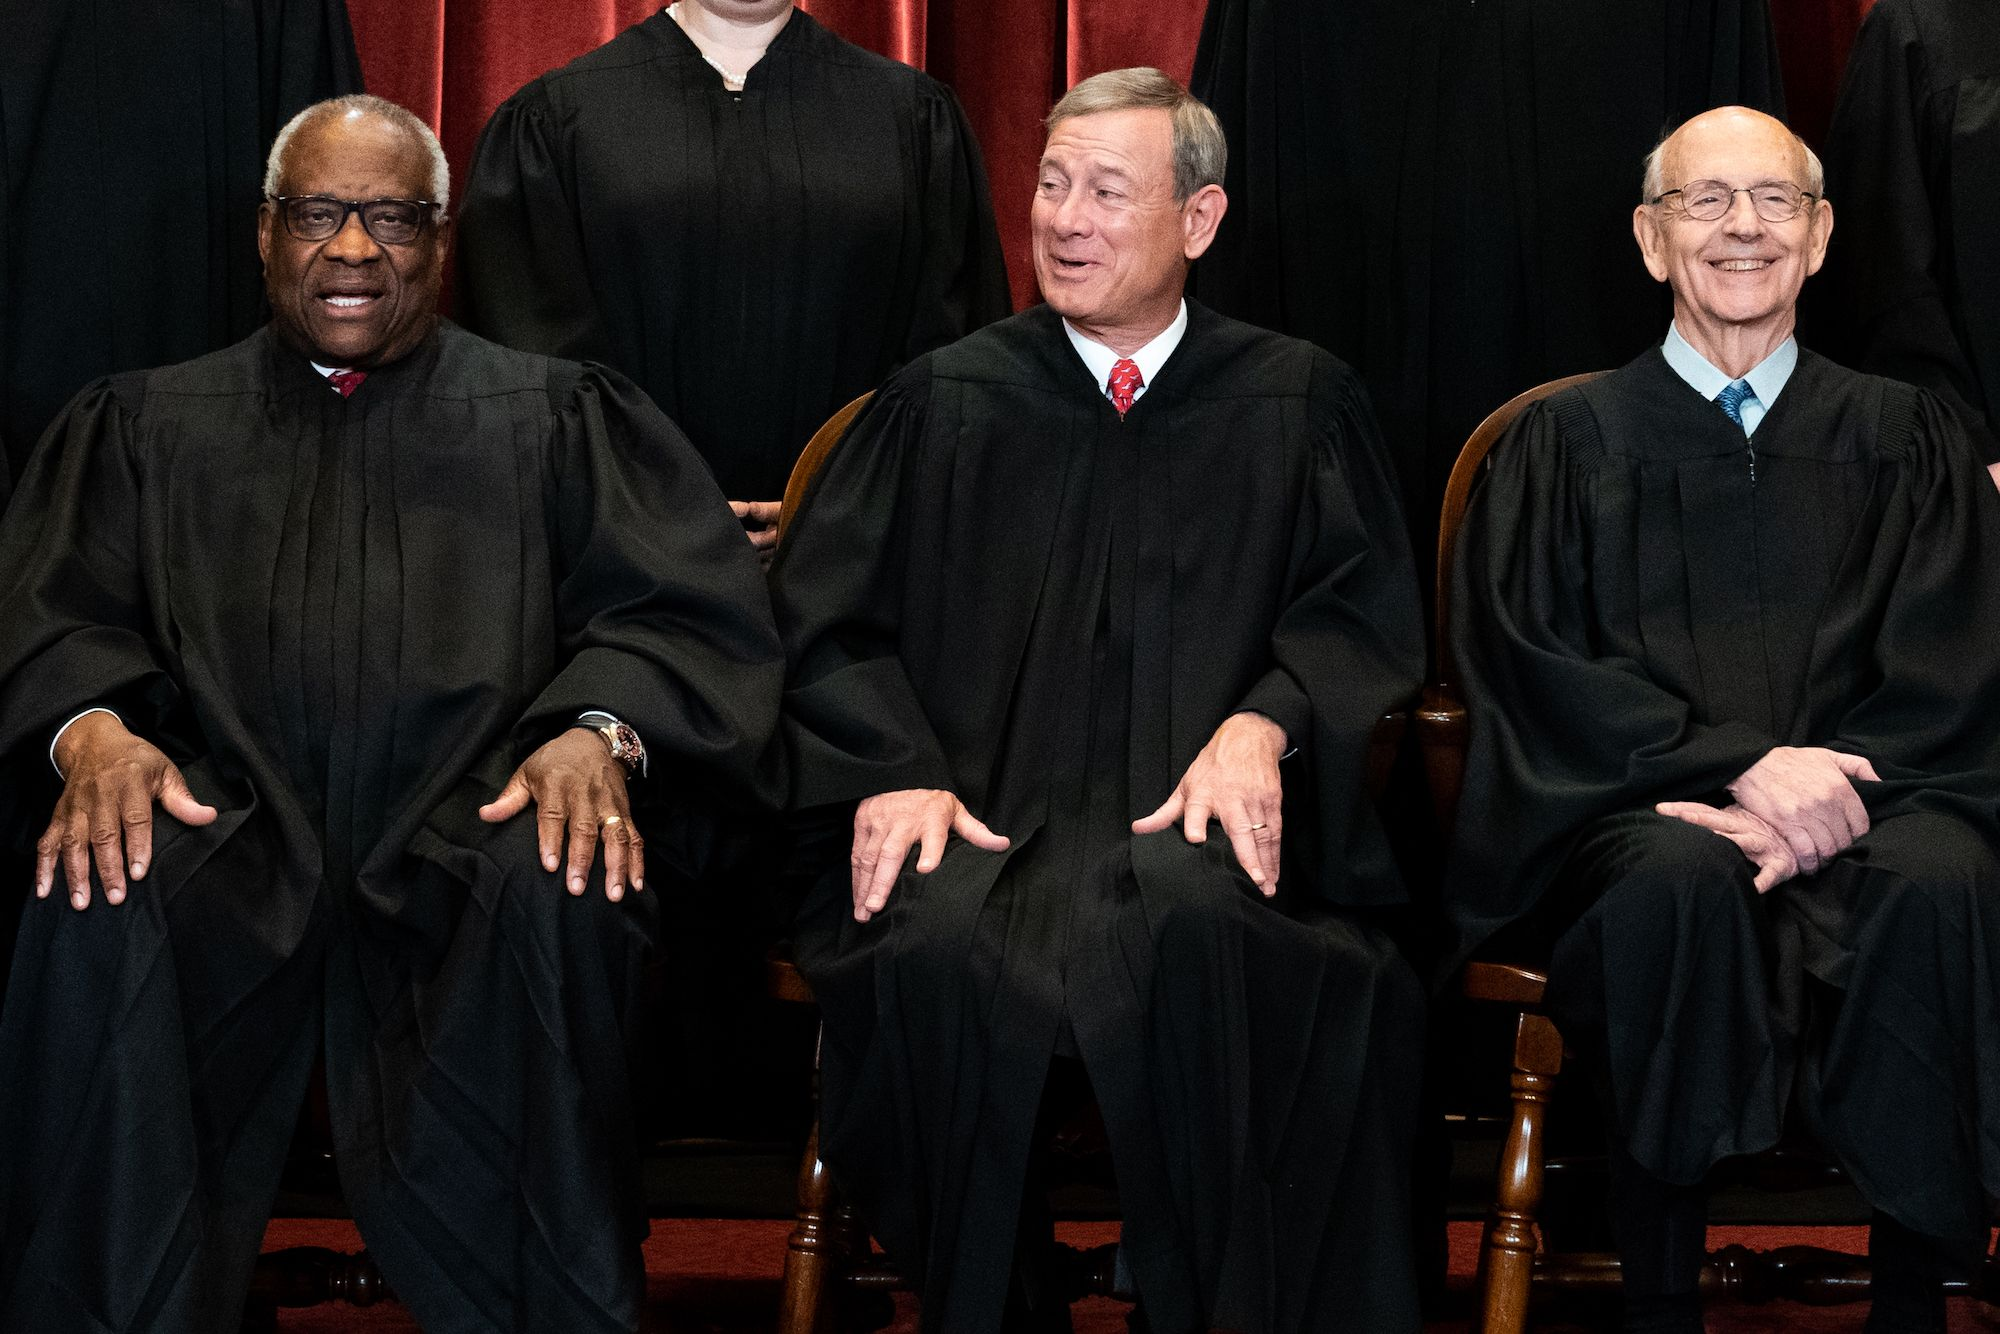 The Supreme Court Is Political on the Inside, Too